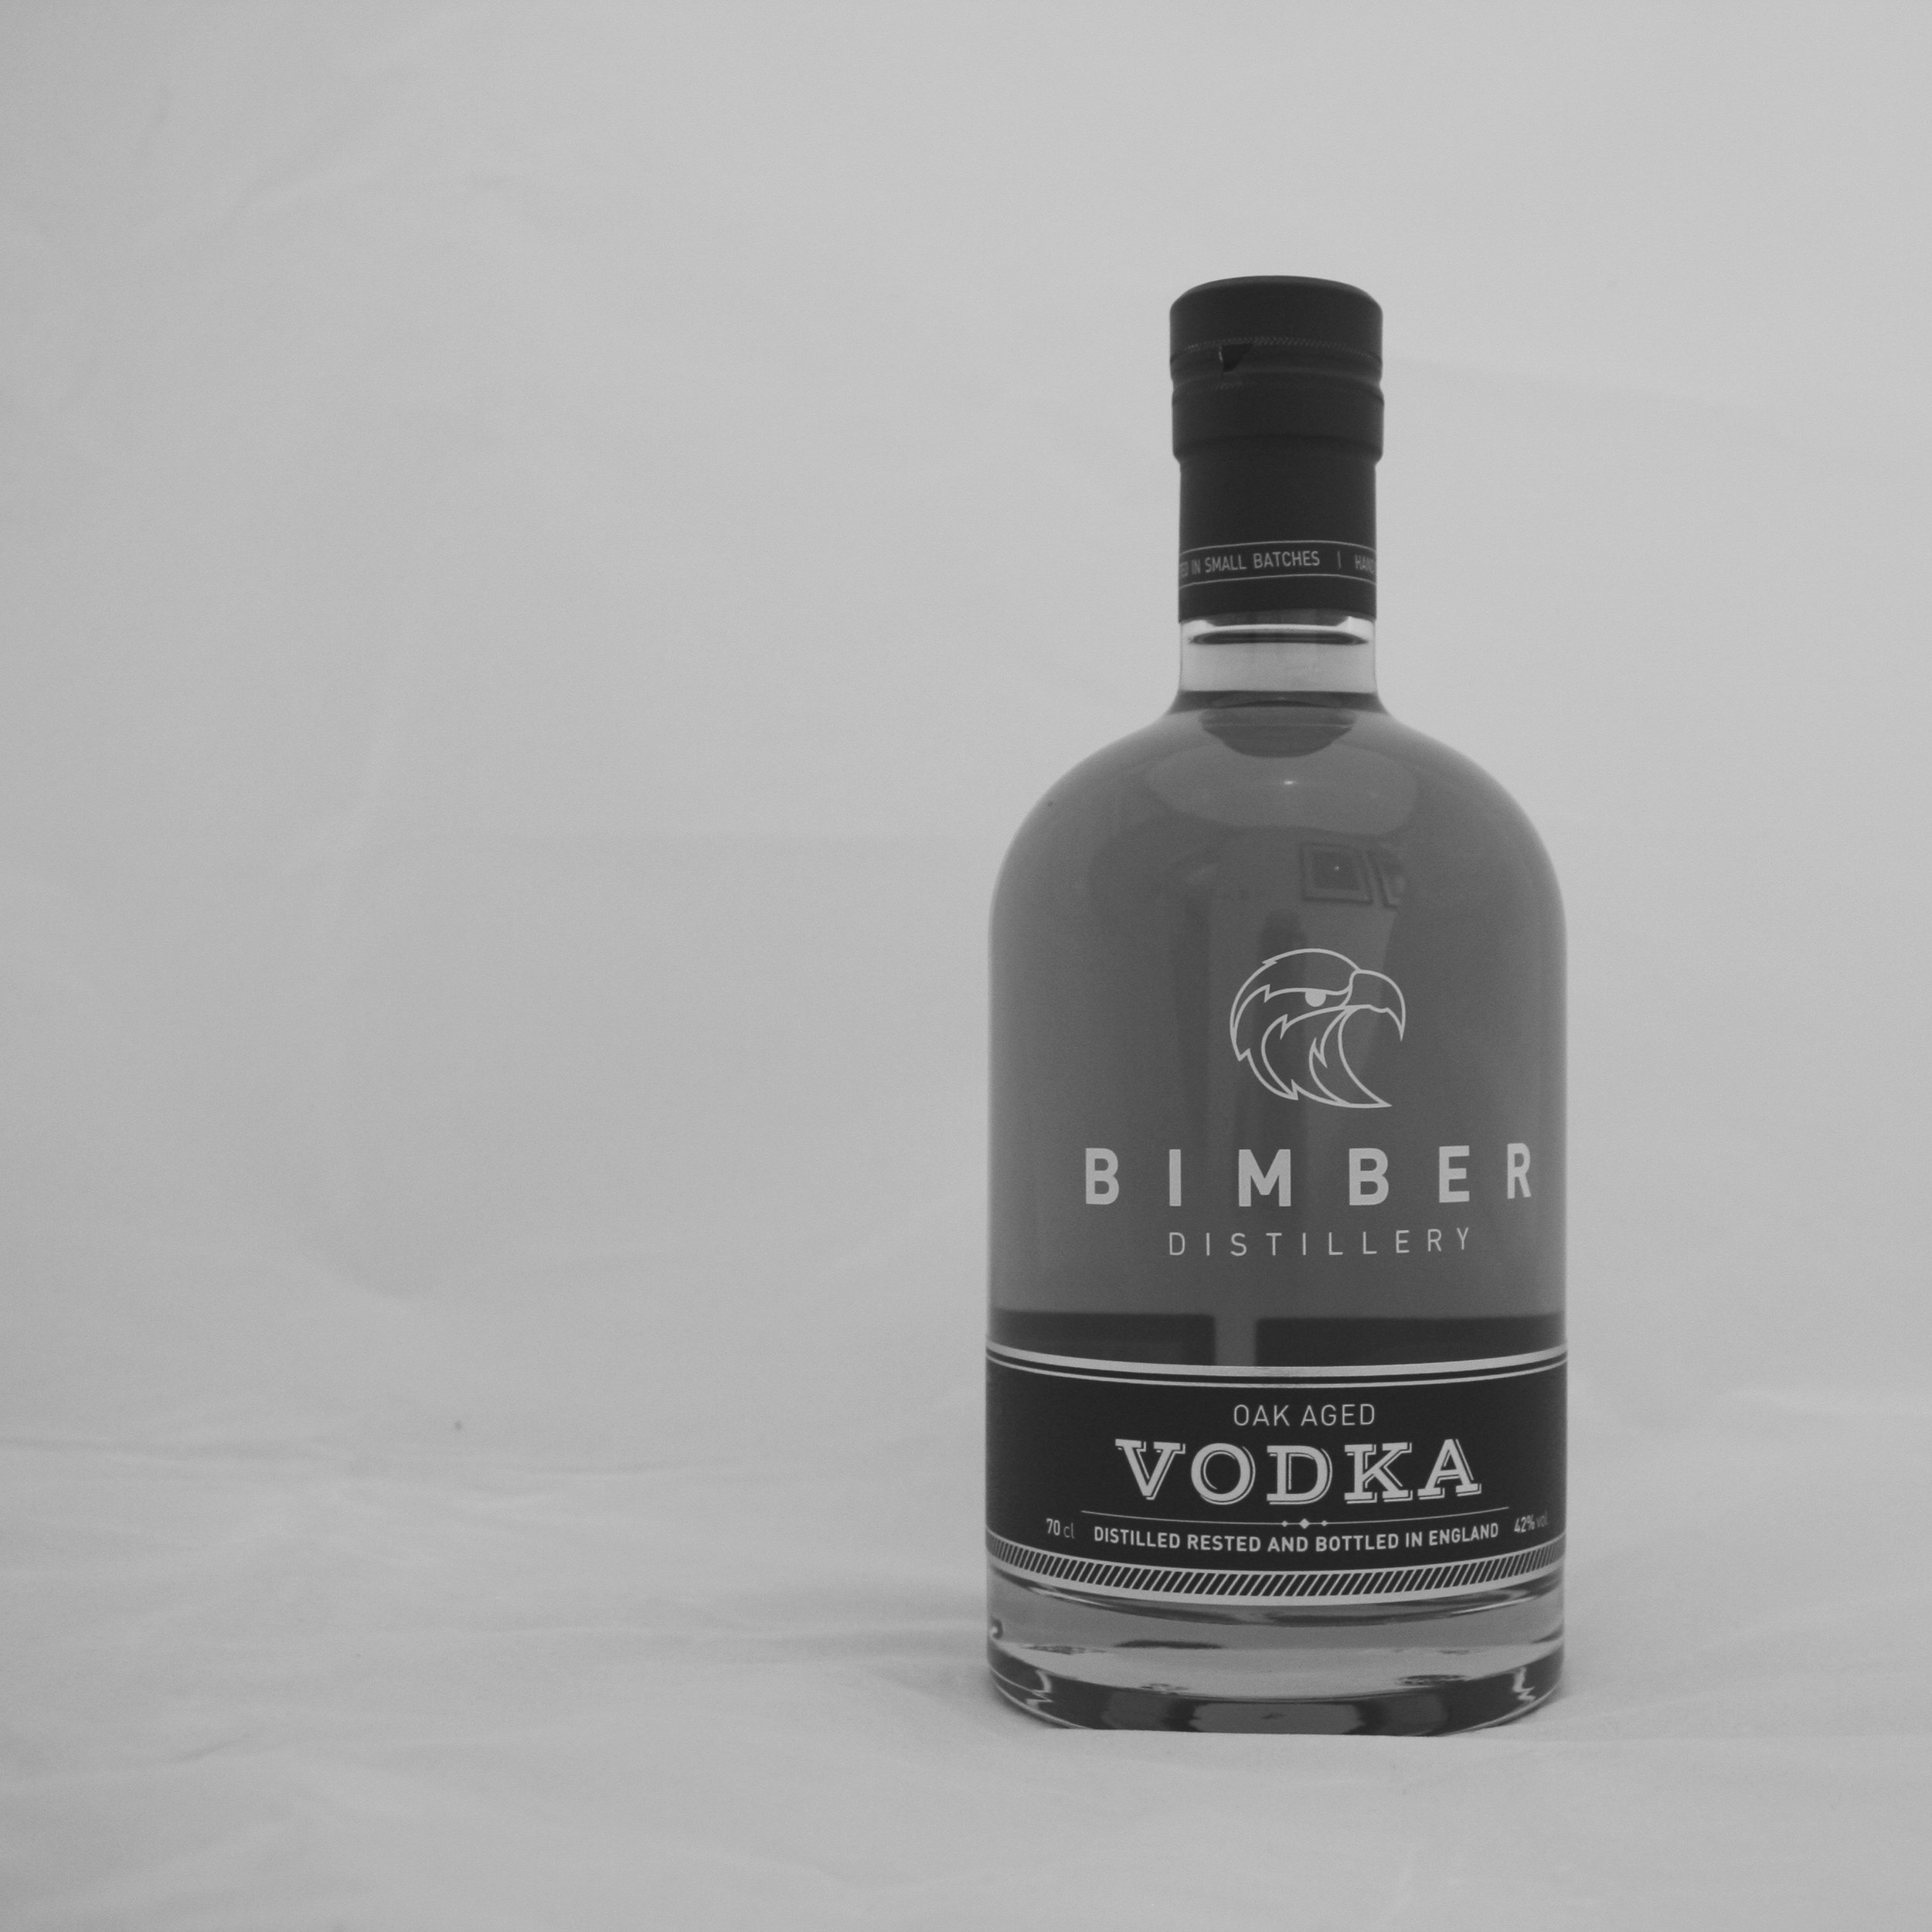 Bimber Aged Vodka bottle